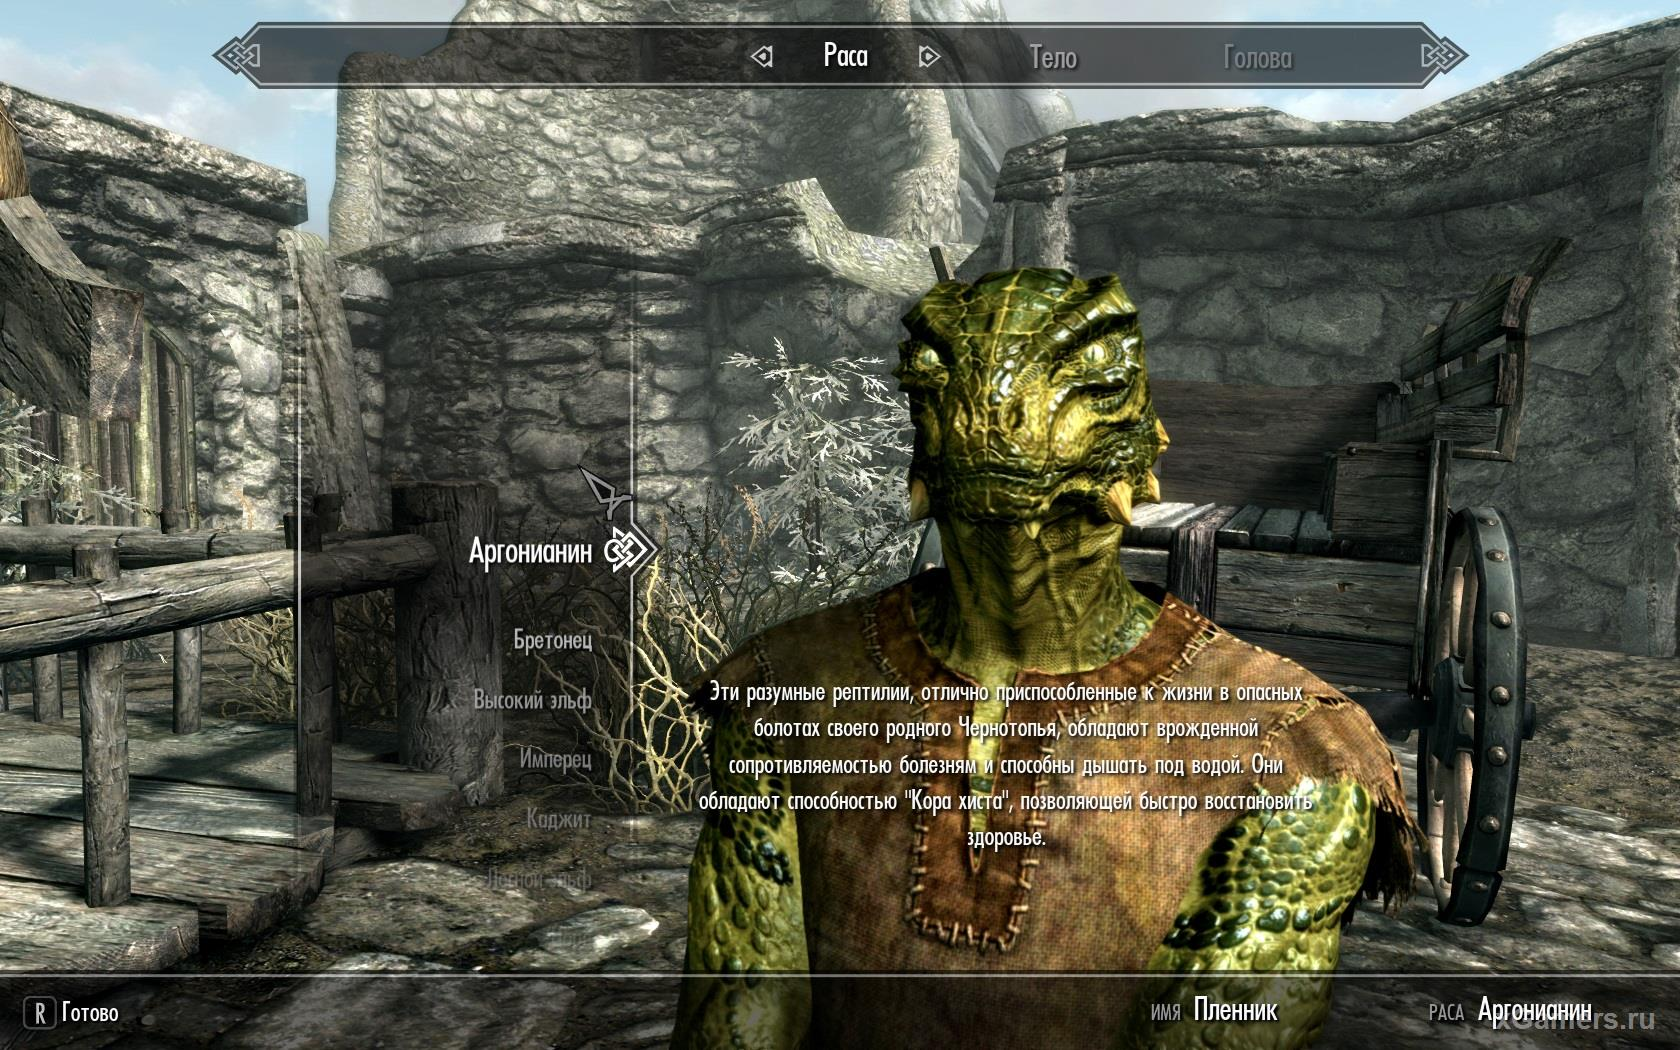 Race - Argonians in the Skyrim